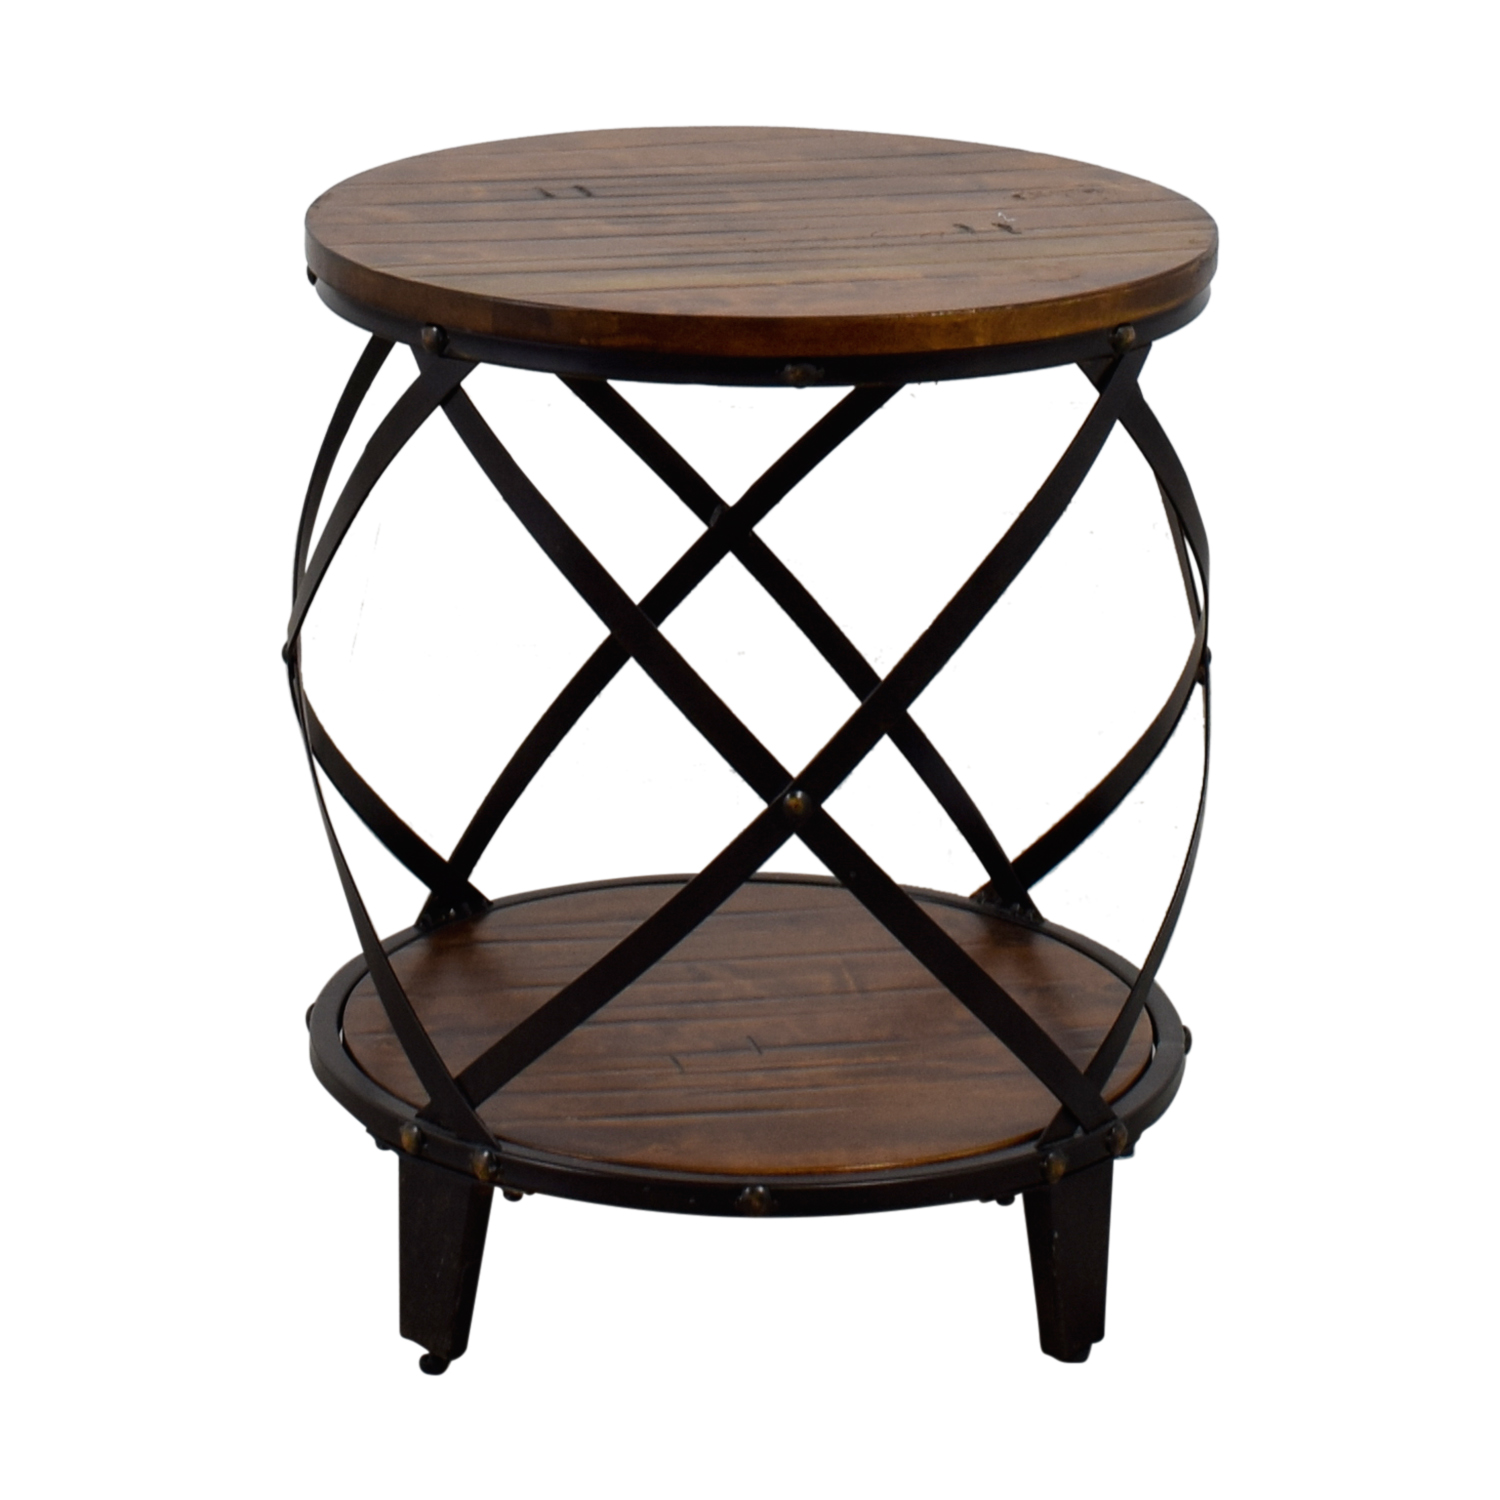 Steve Silver Steve Silver Round Wood and Metal End Table dimensions